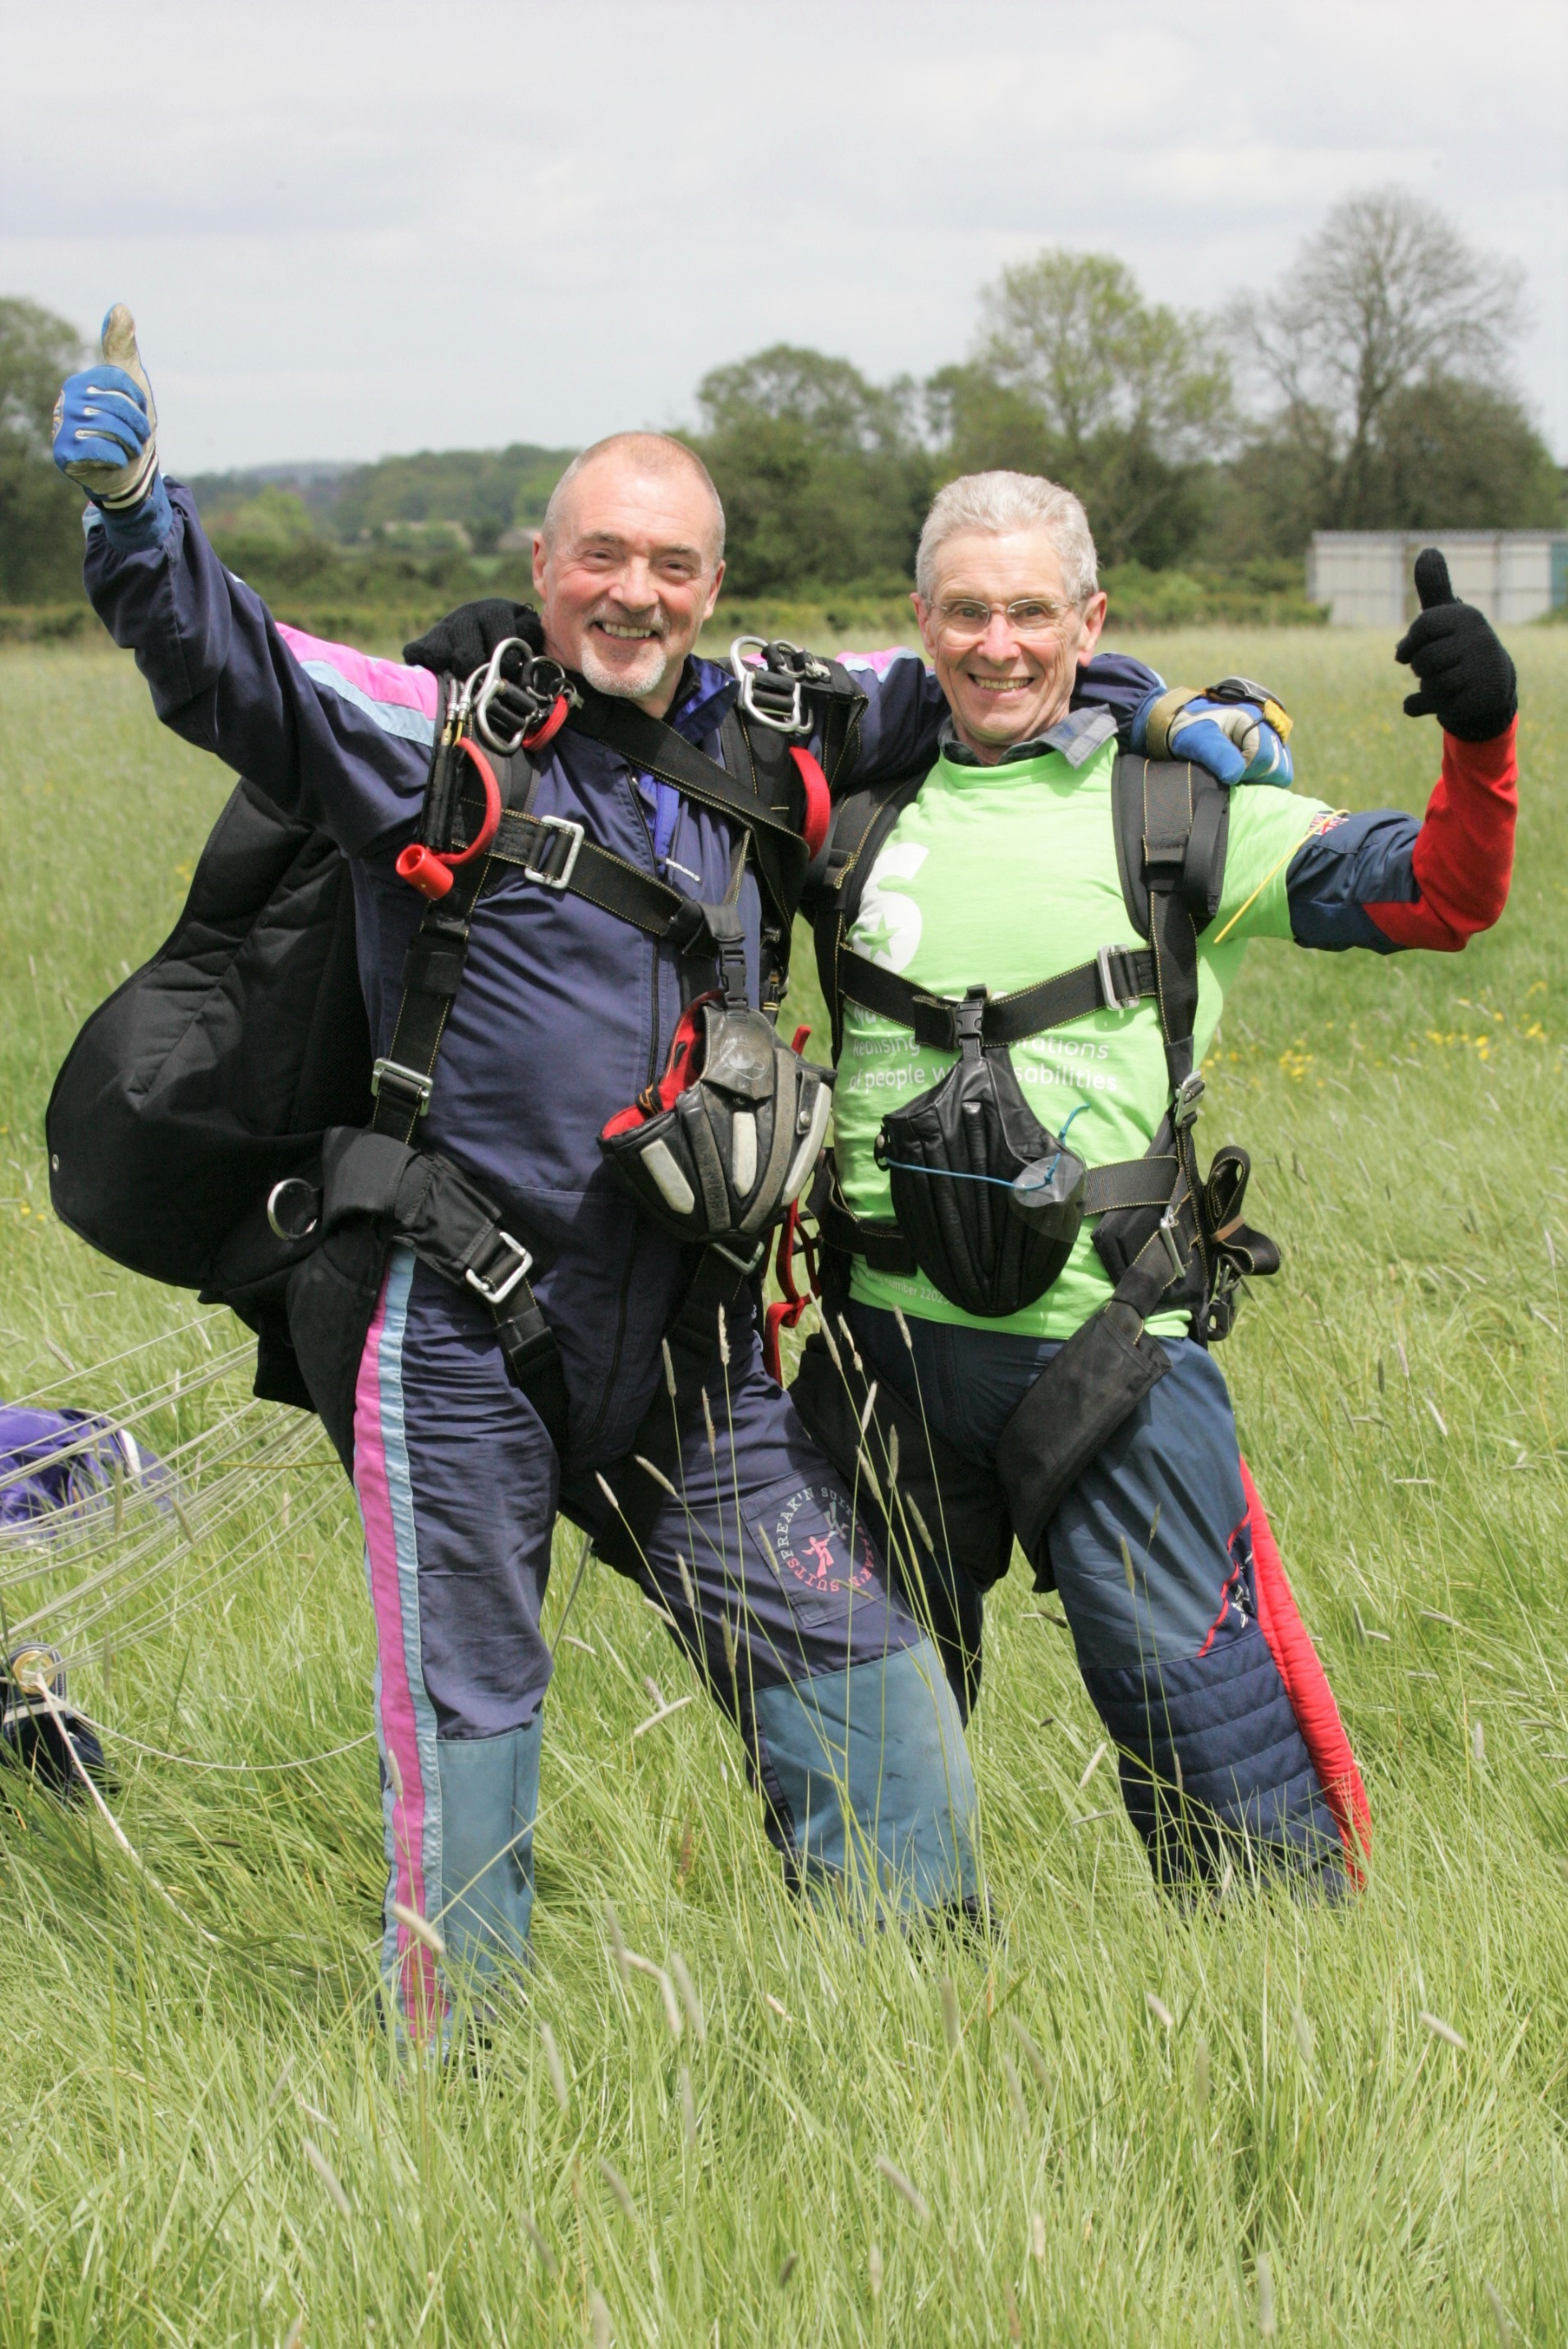 Skydiving to raise funds for the National Star College